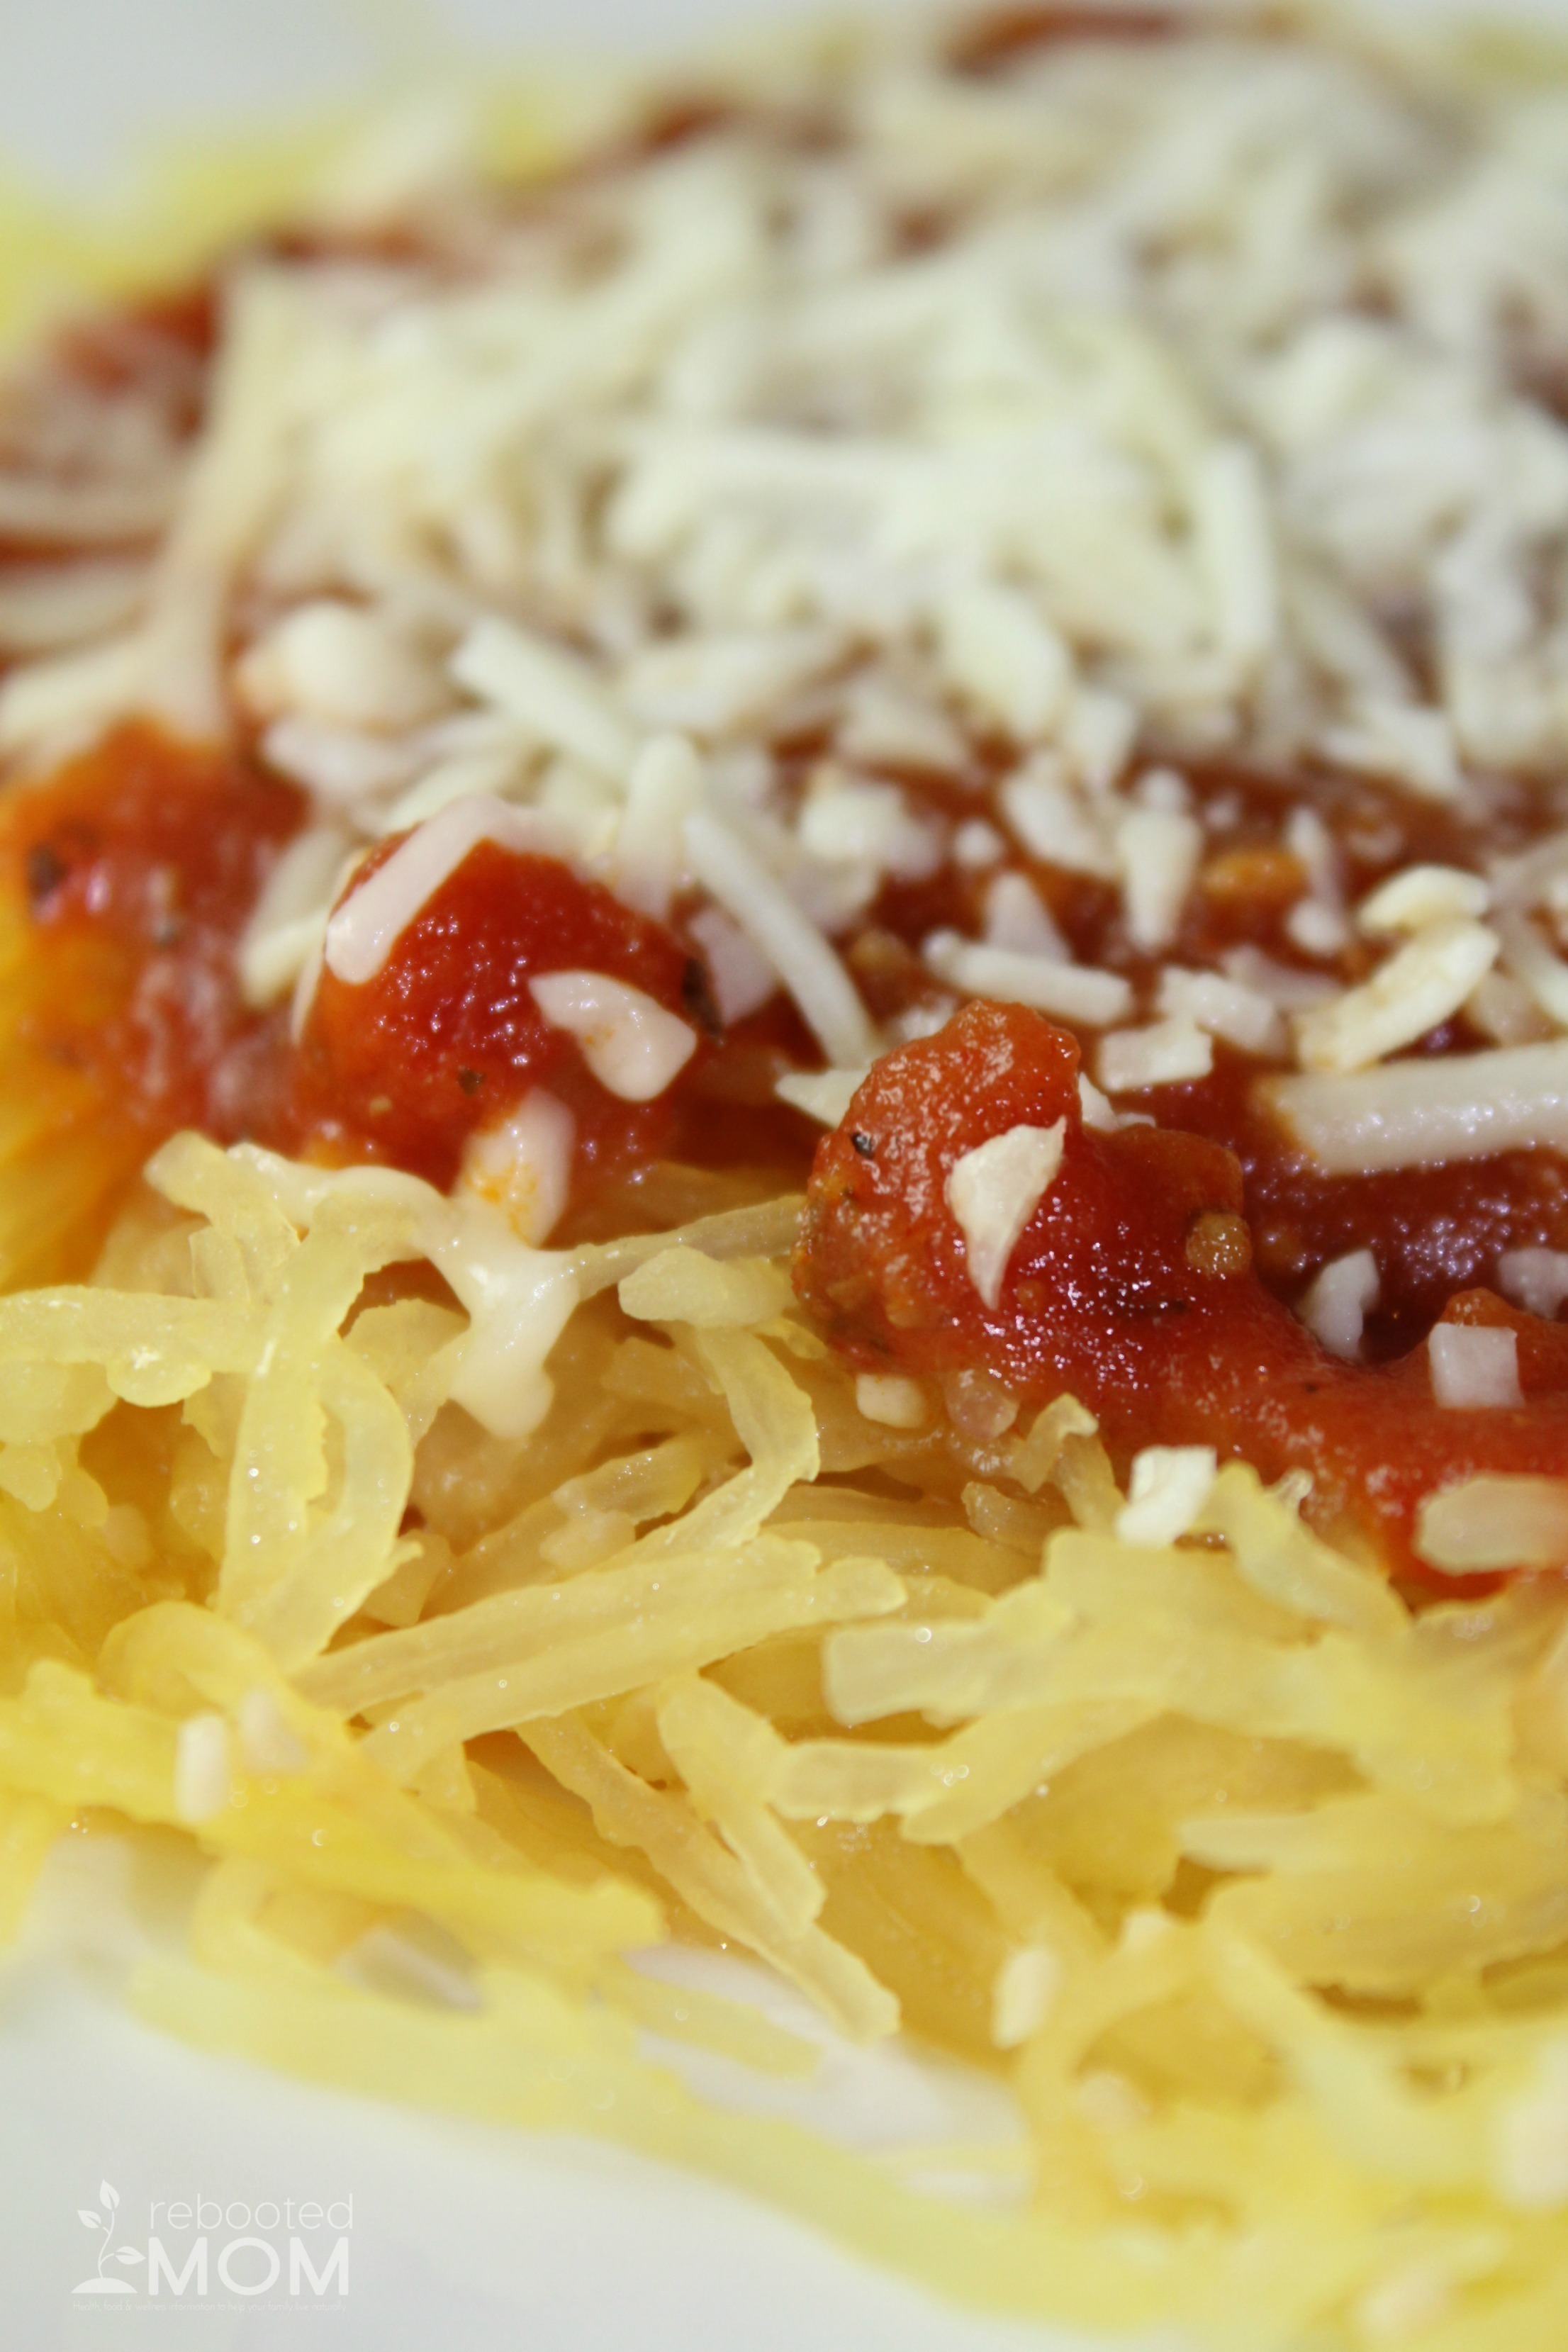 Spaghetti squash cooks up quickly and easily in less than 10 minutes in your Instant Pot.